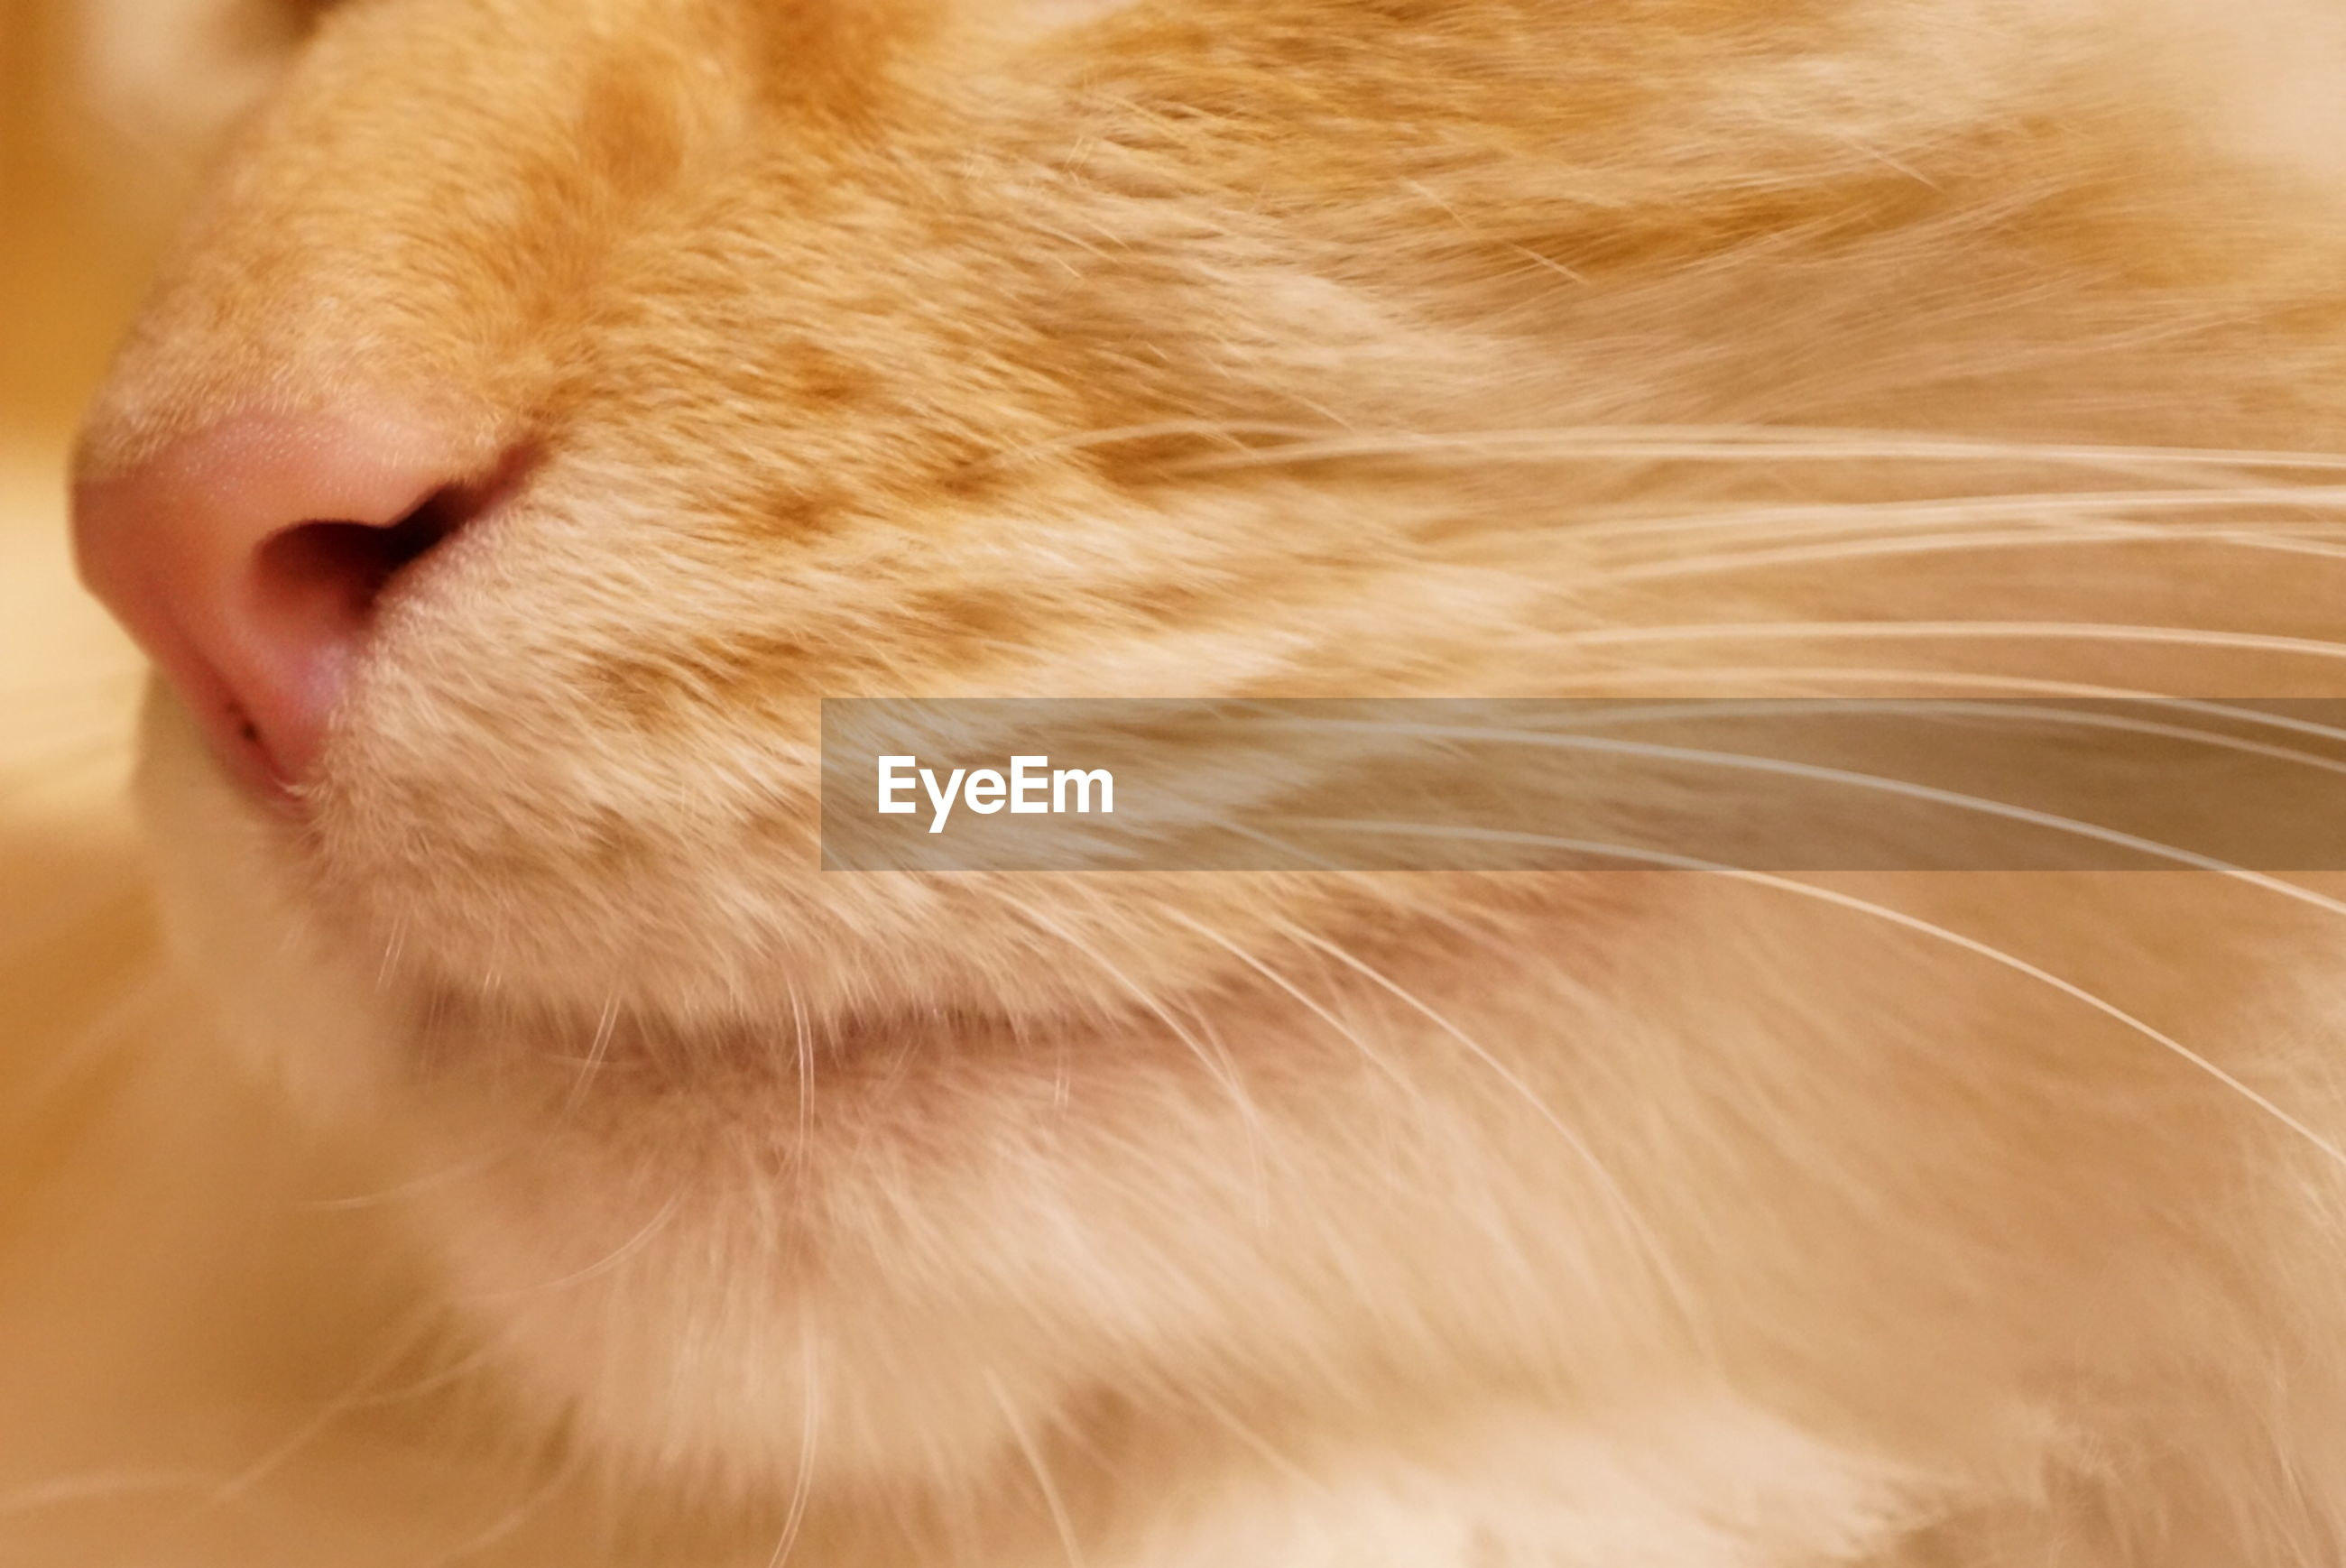 domestic animals, one animal, mammal, pets, animal themes, close-up, animal head, domestic cat, animal body part, animal hair, cat, whisker, feline, part of, brown, indoors, focus on foreground, eyes closed, dog, looking away